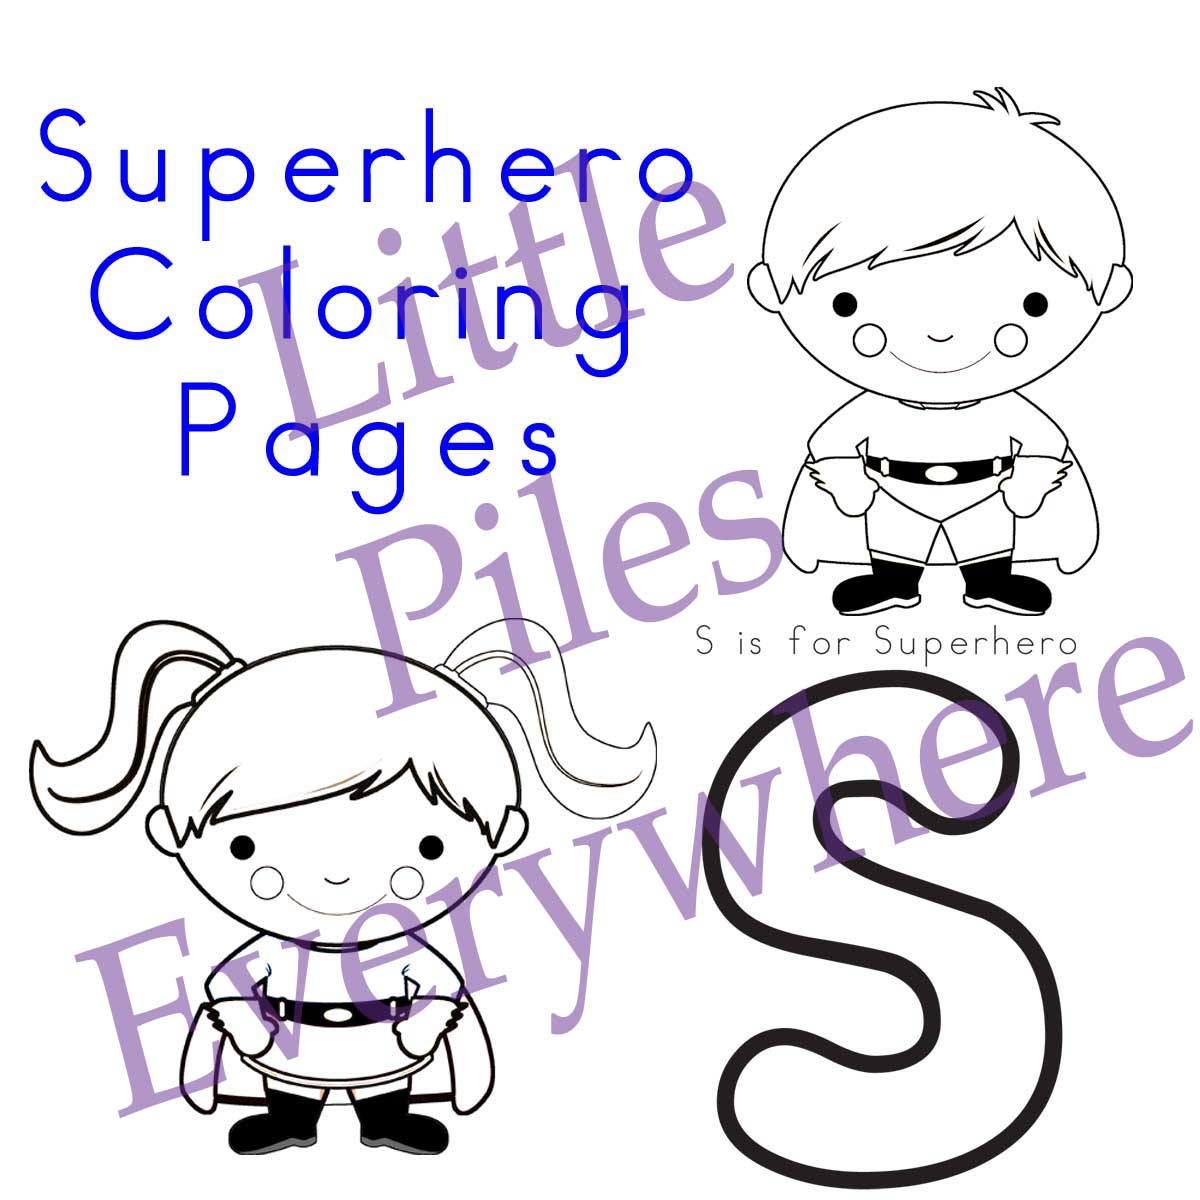 Little Piles Everywhere: Superhero Coloring Pages